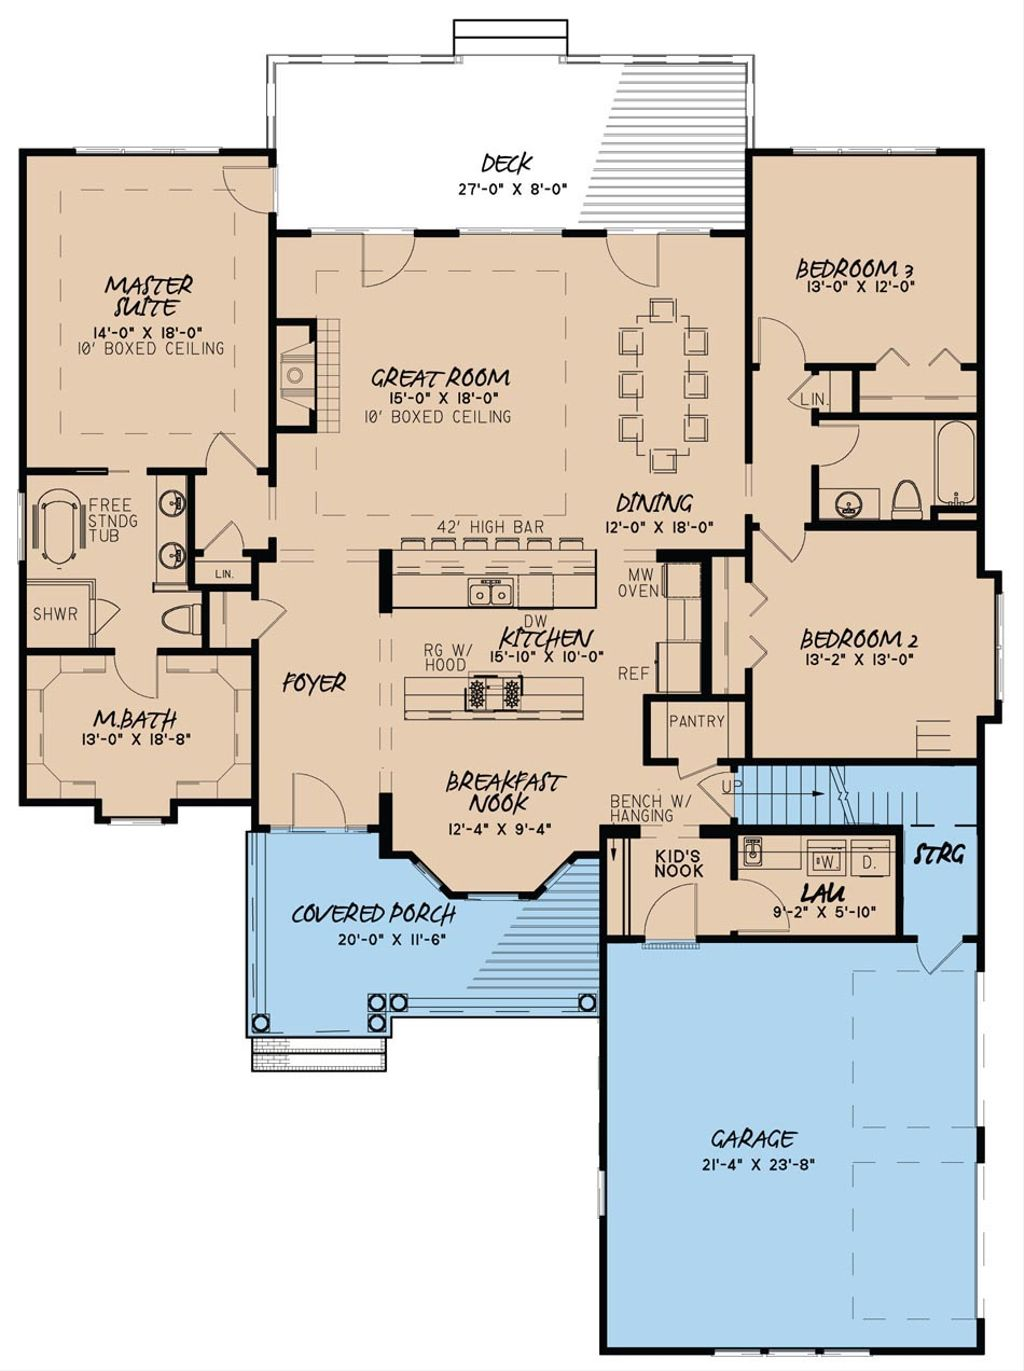 Country style house plan 3 beds 2 baths 2148 sq ft plan for Country style floor plans